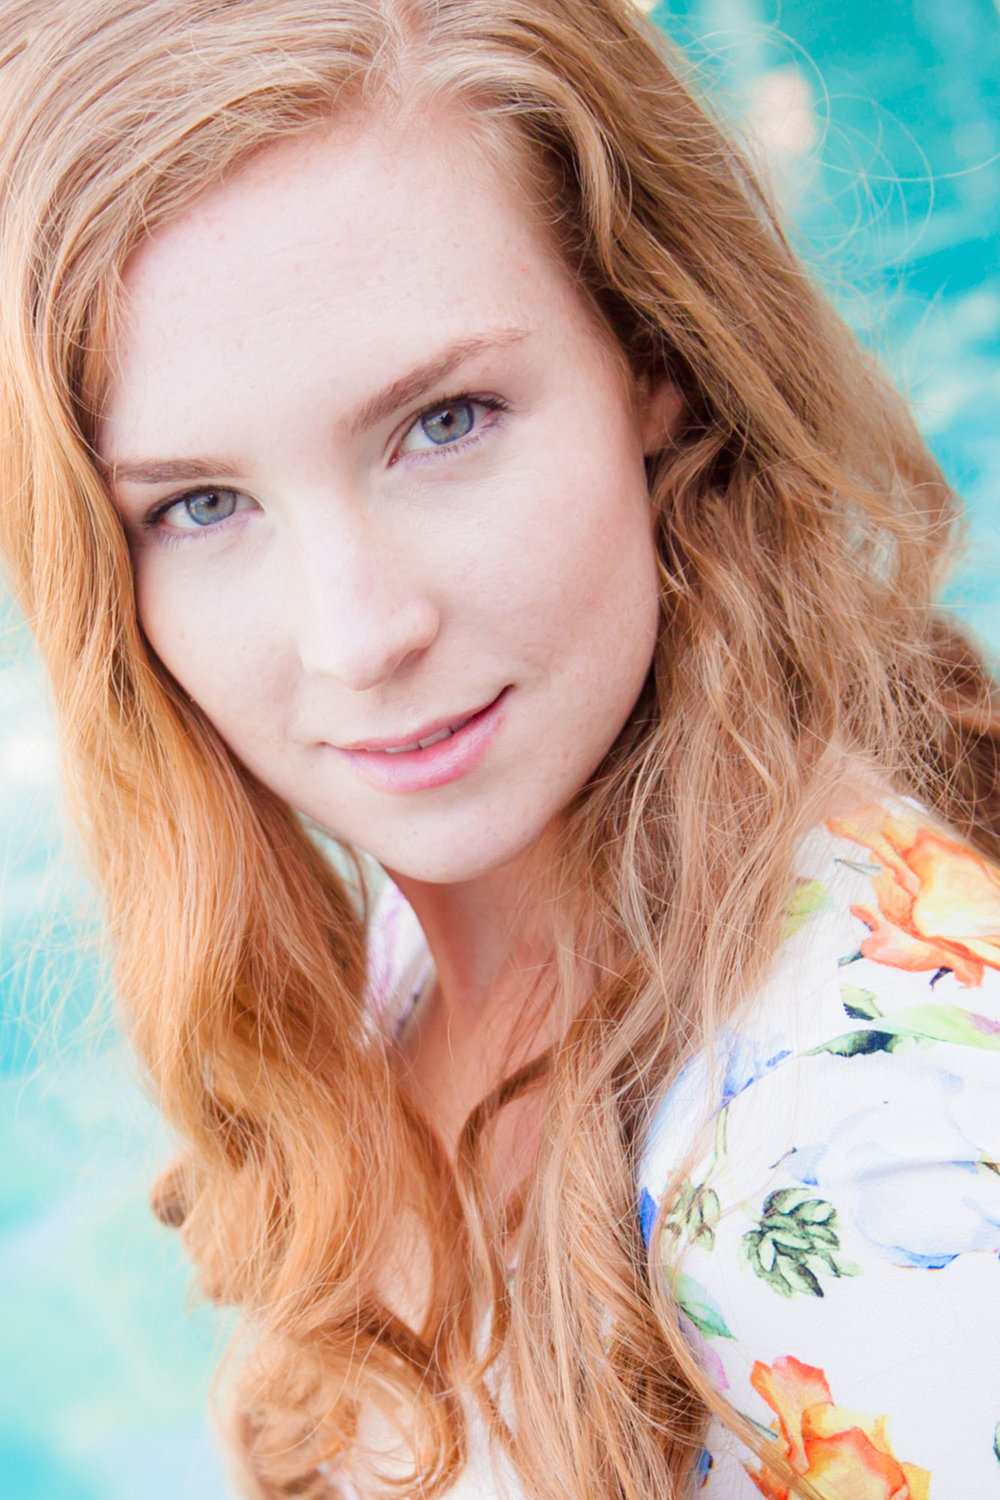 olivia-rose-gems-head-shot-san-diego-blue-eyes-redhead